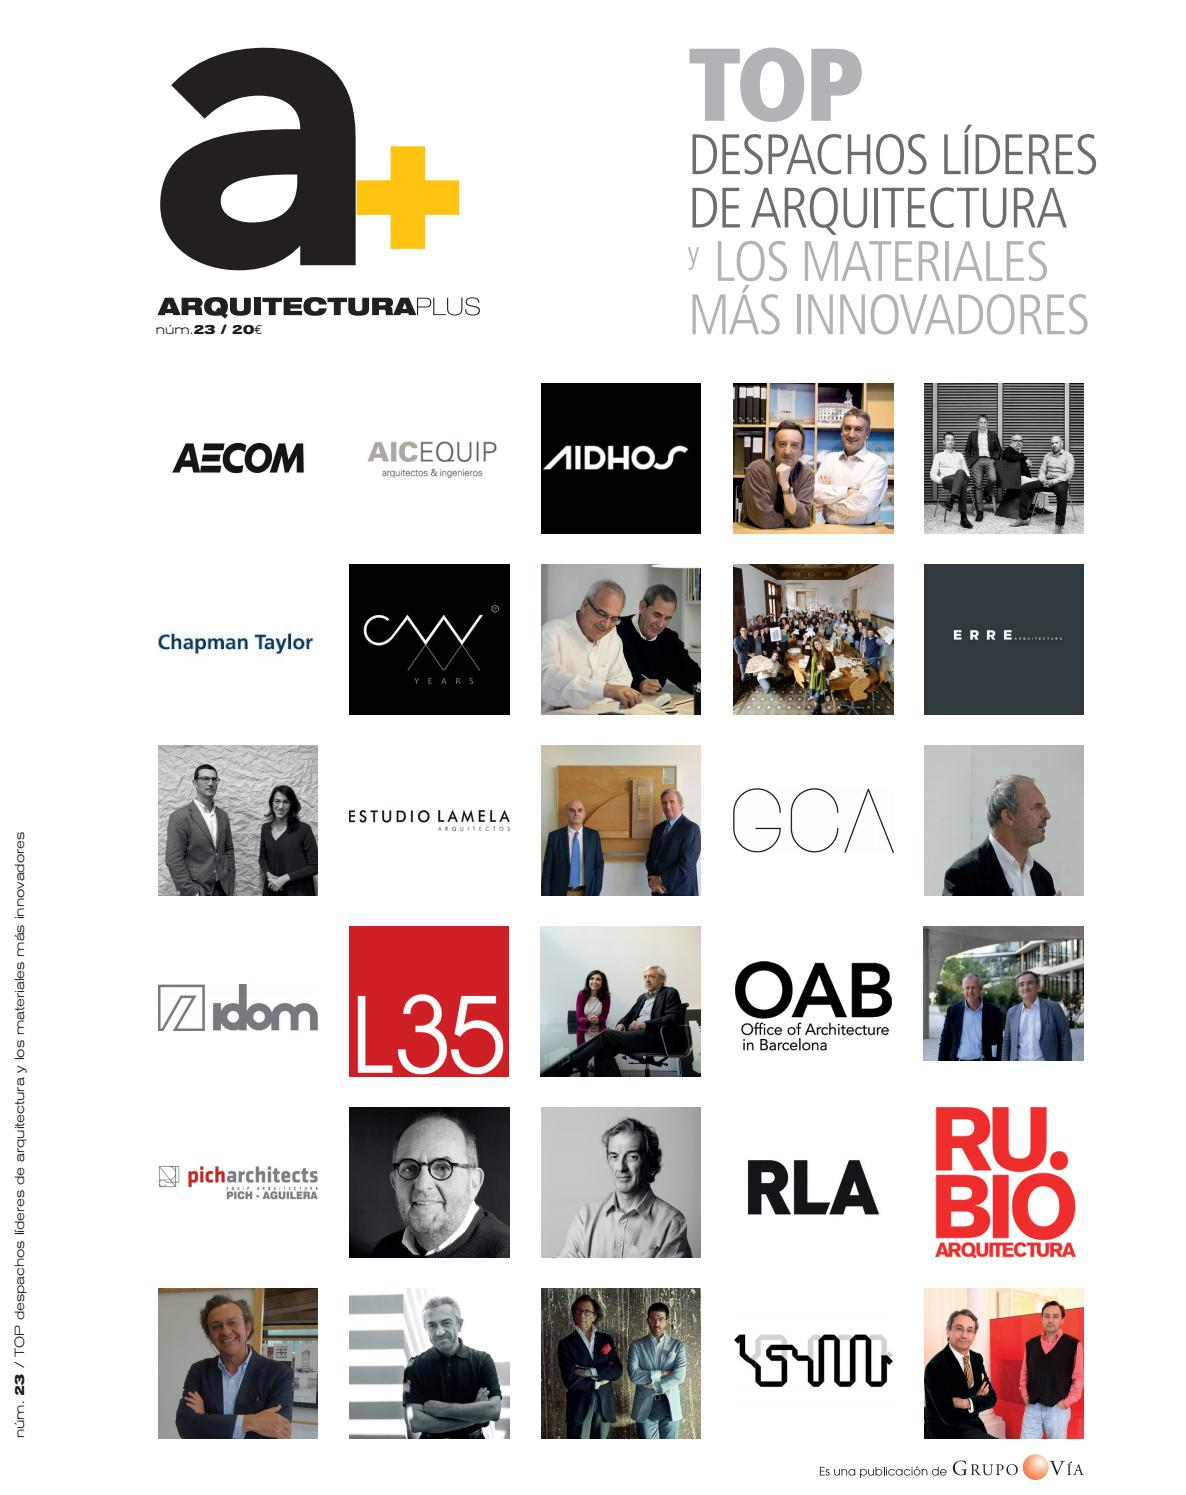 Arquitectura Plus 23 by Grupo Vía - issuu